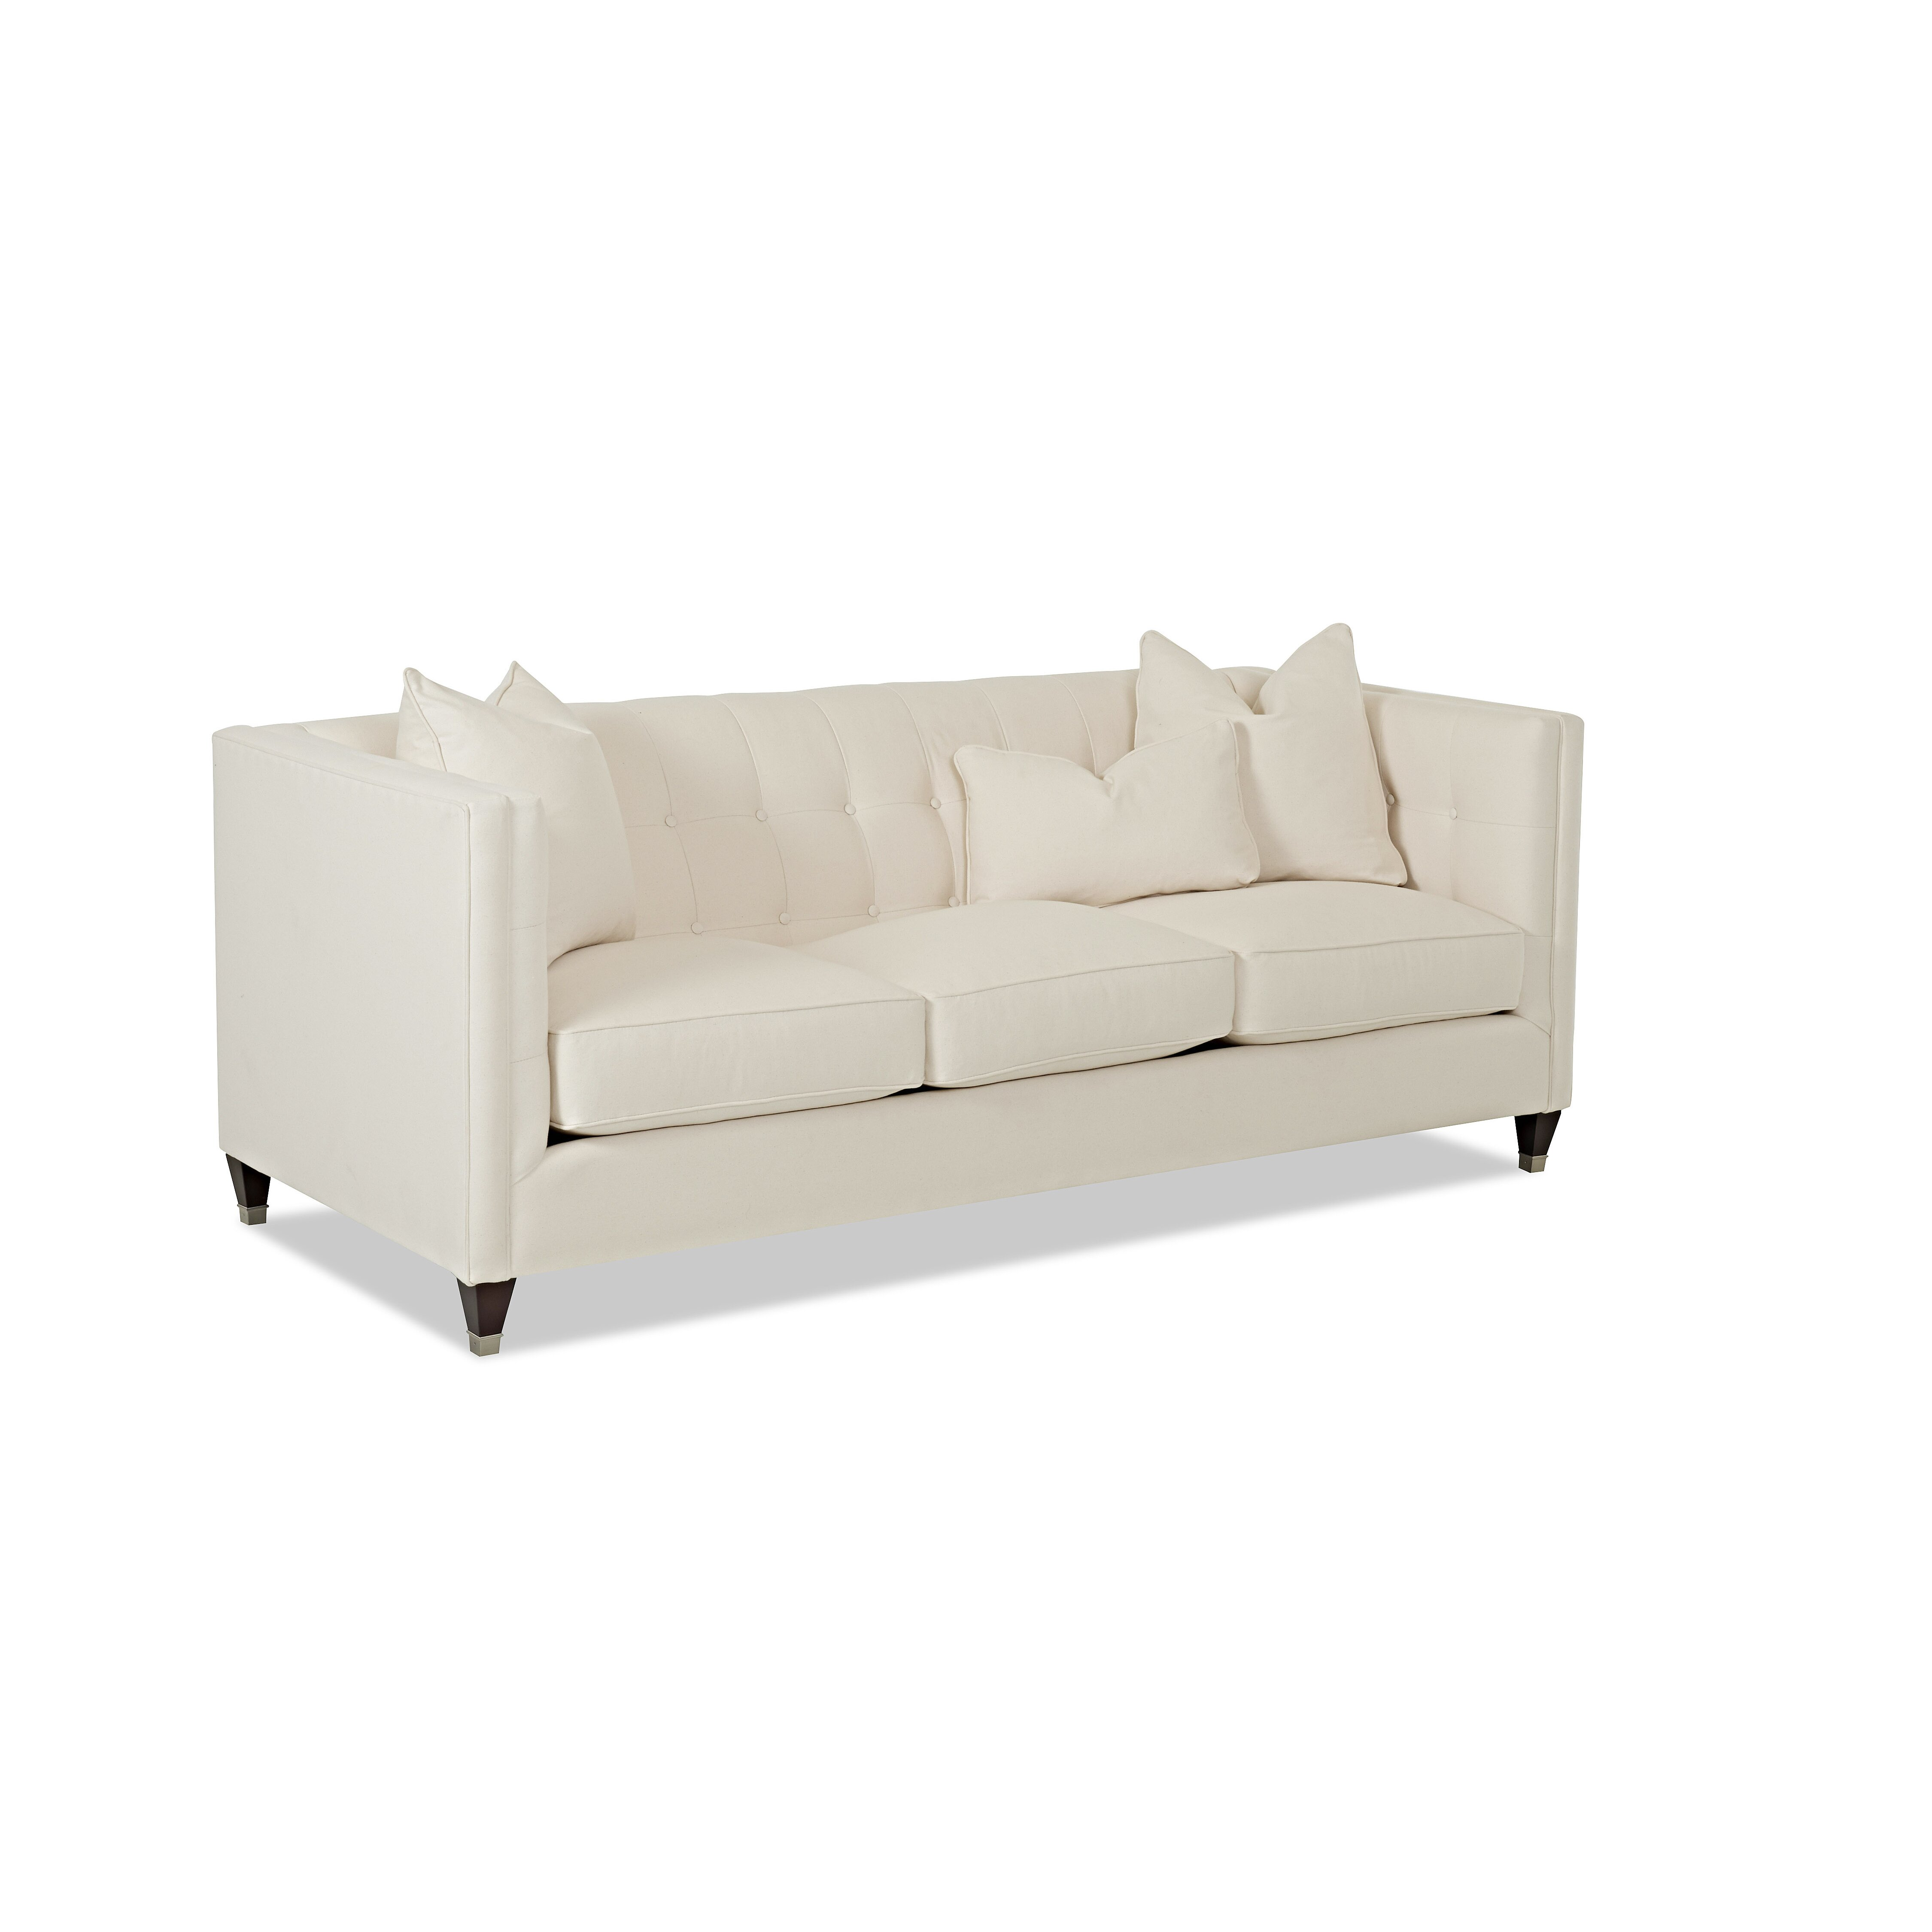 Wayfair Custom Upholstery Jessica Sofa Reviews